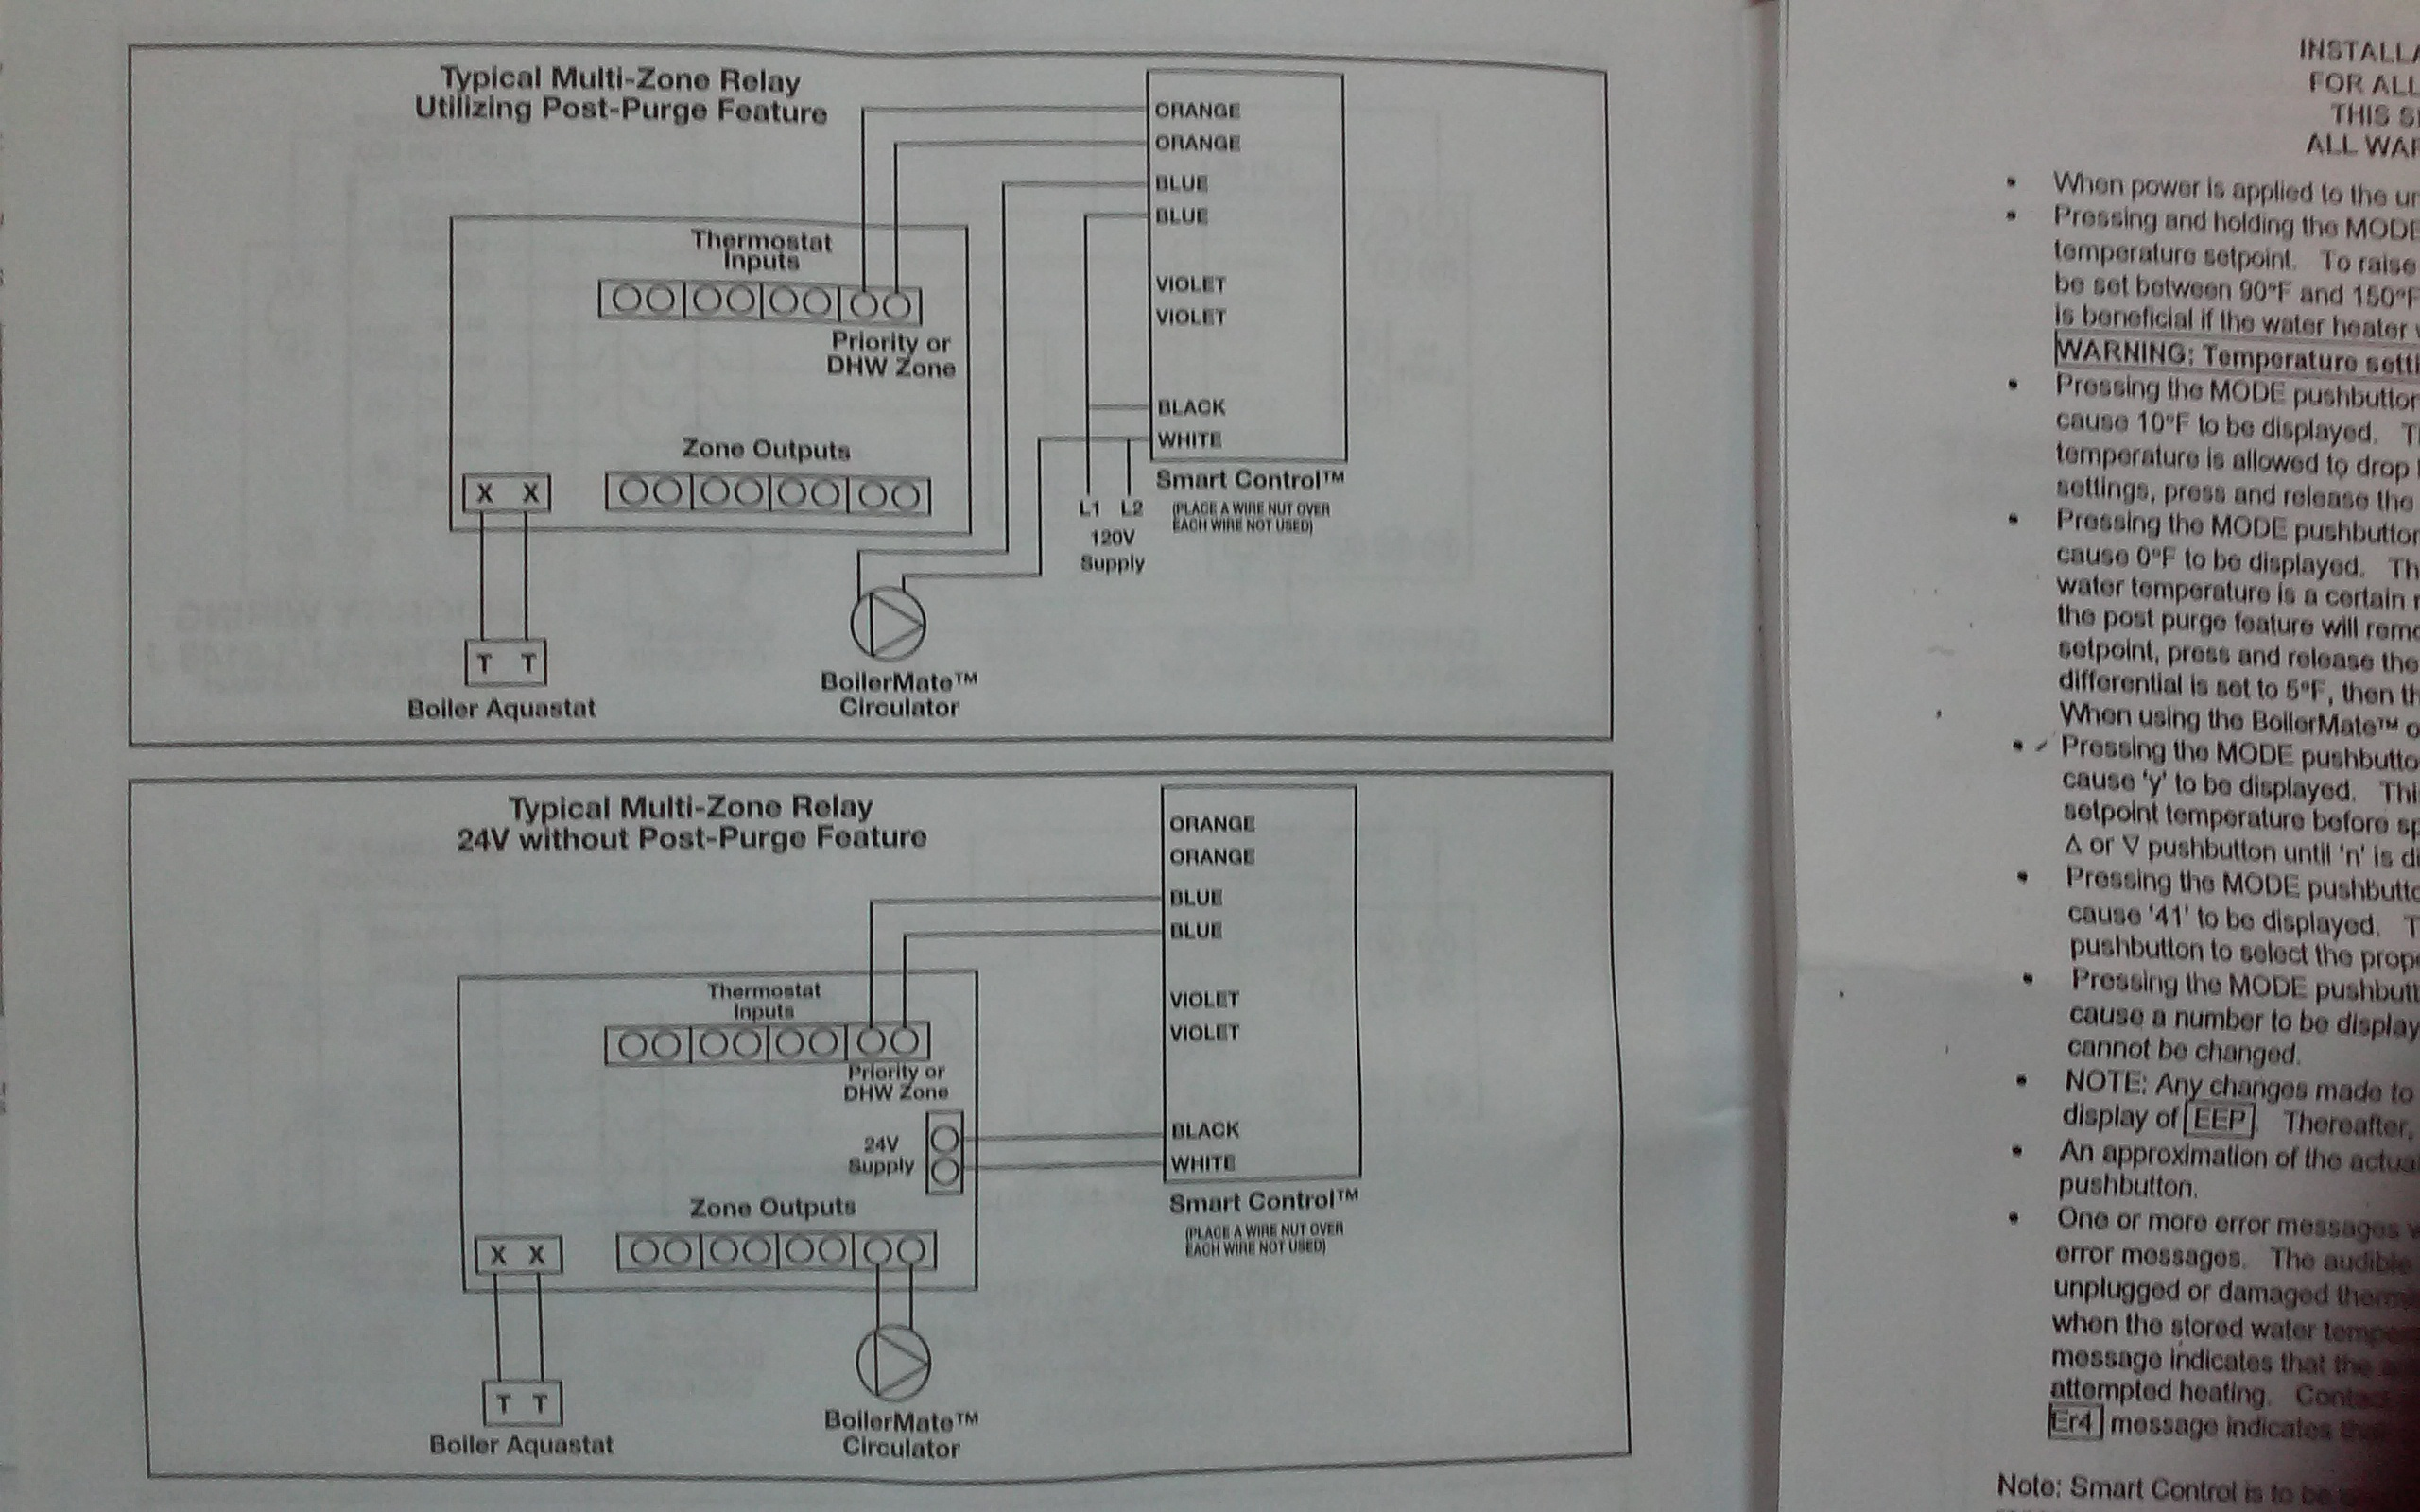 Boilermate Hot Water Tanks Electric Wiring Diagram Trusted Heater On Power Cord I Contacted You Yesterday About A New Boiler To An Indirect For 220 Volt